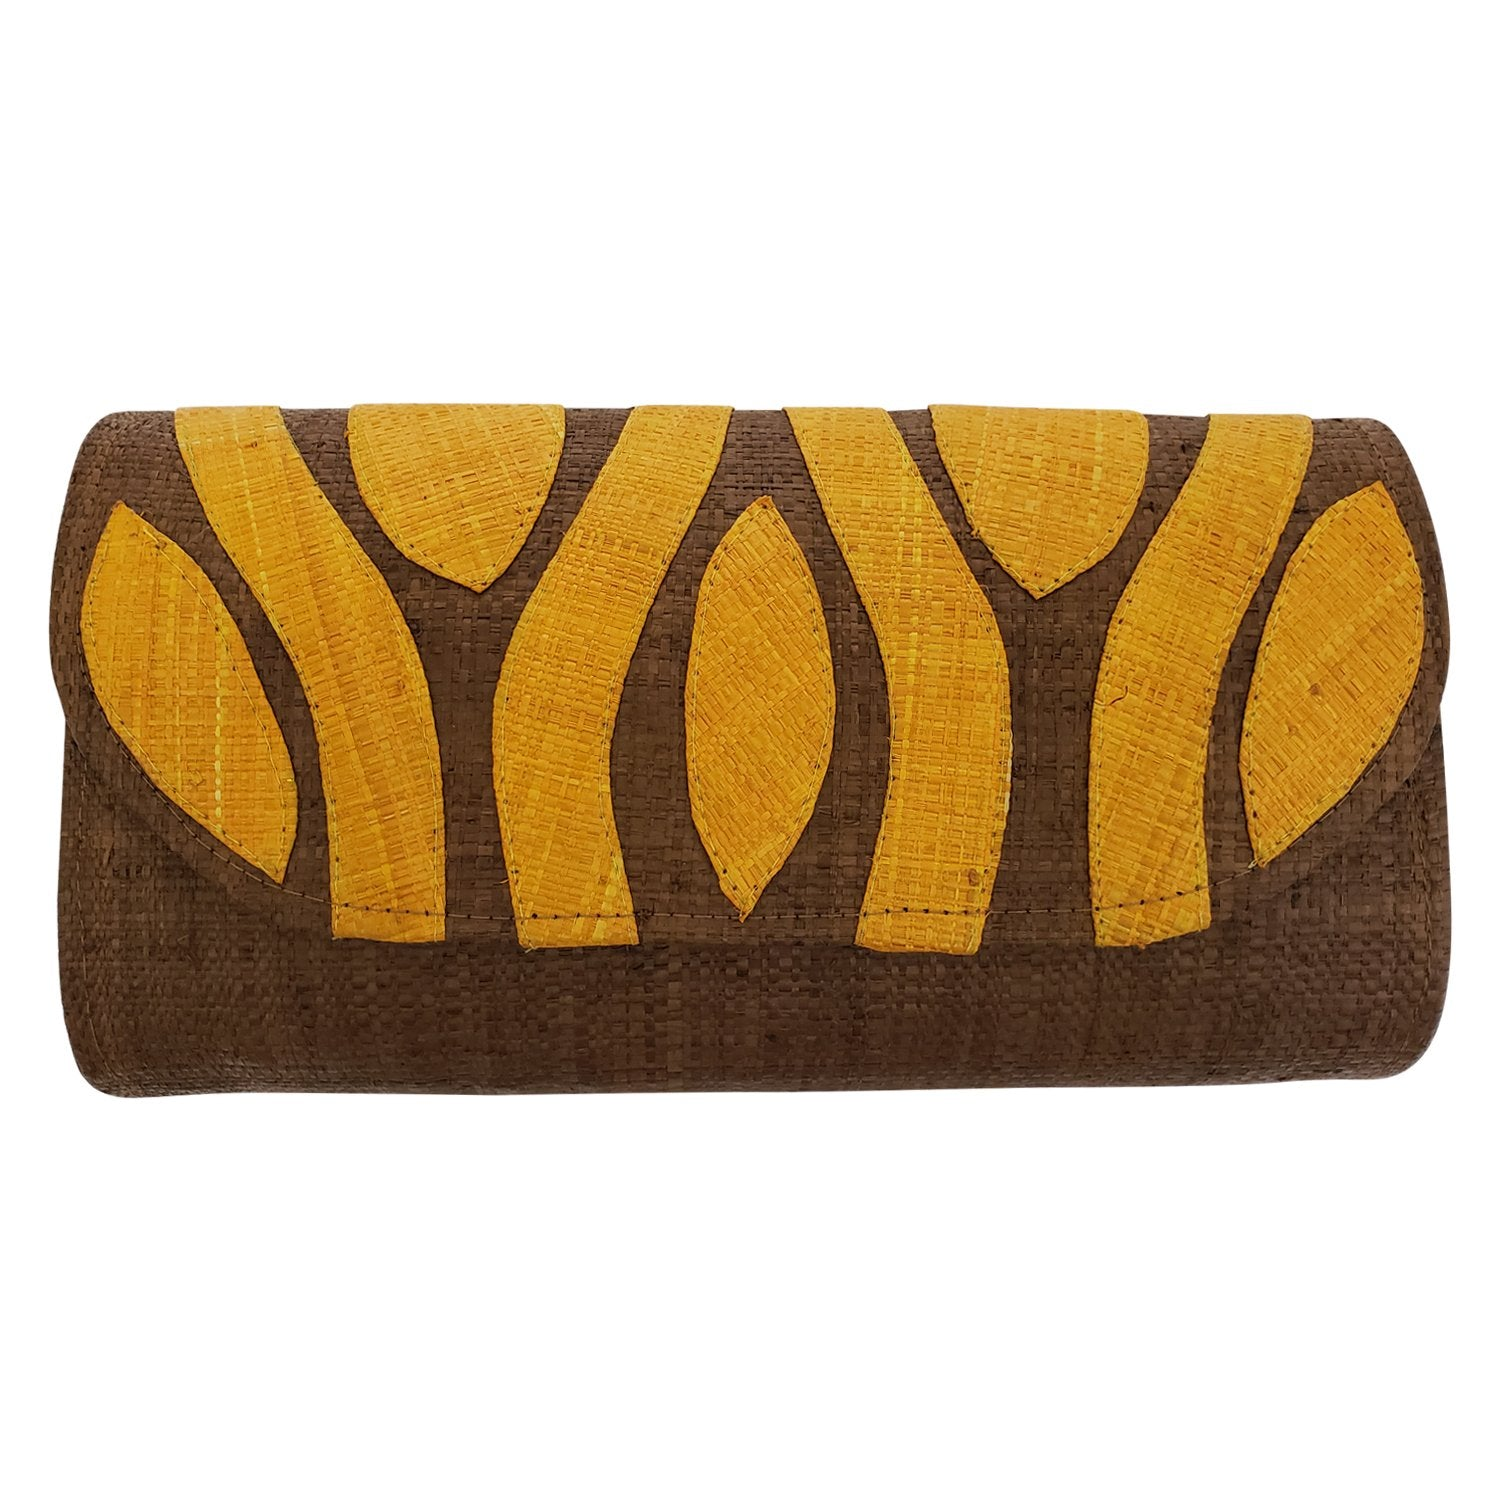 Authentic Handwoven Brown Madagascar Raffia Clutch with Orange Accents